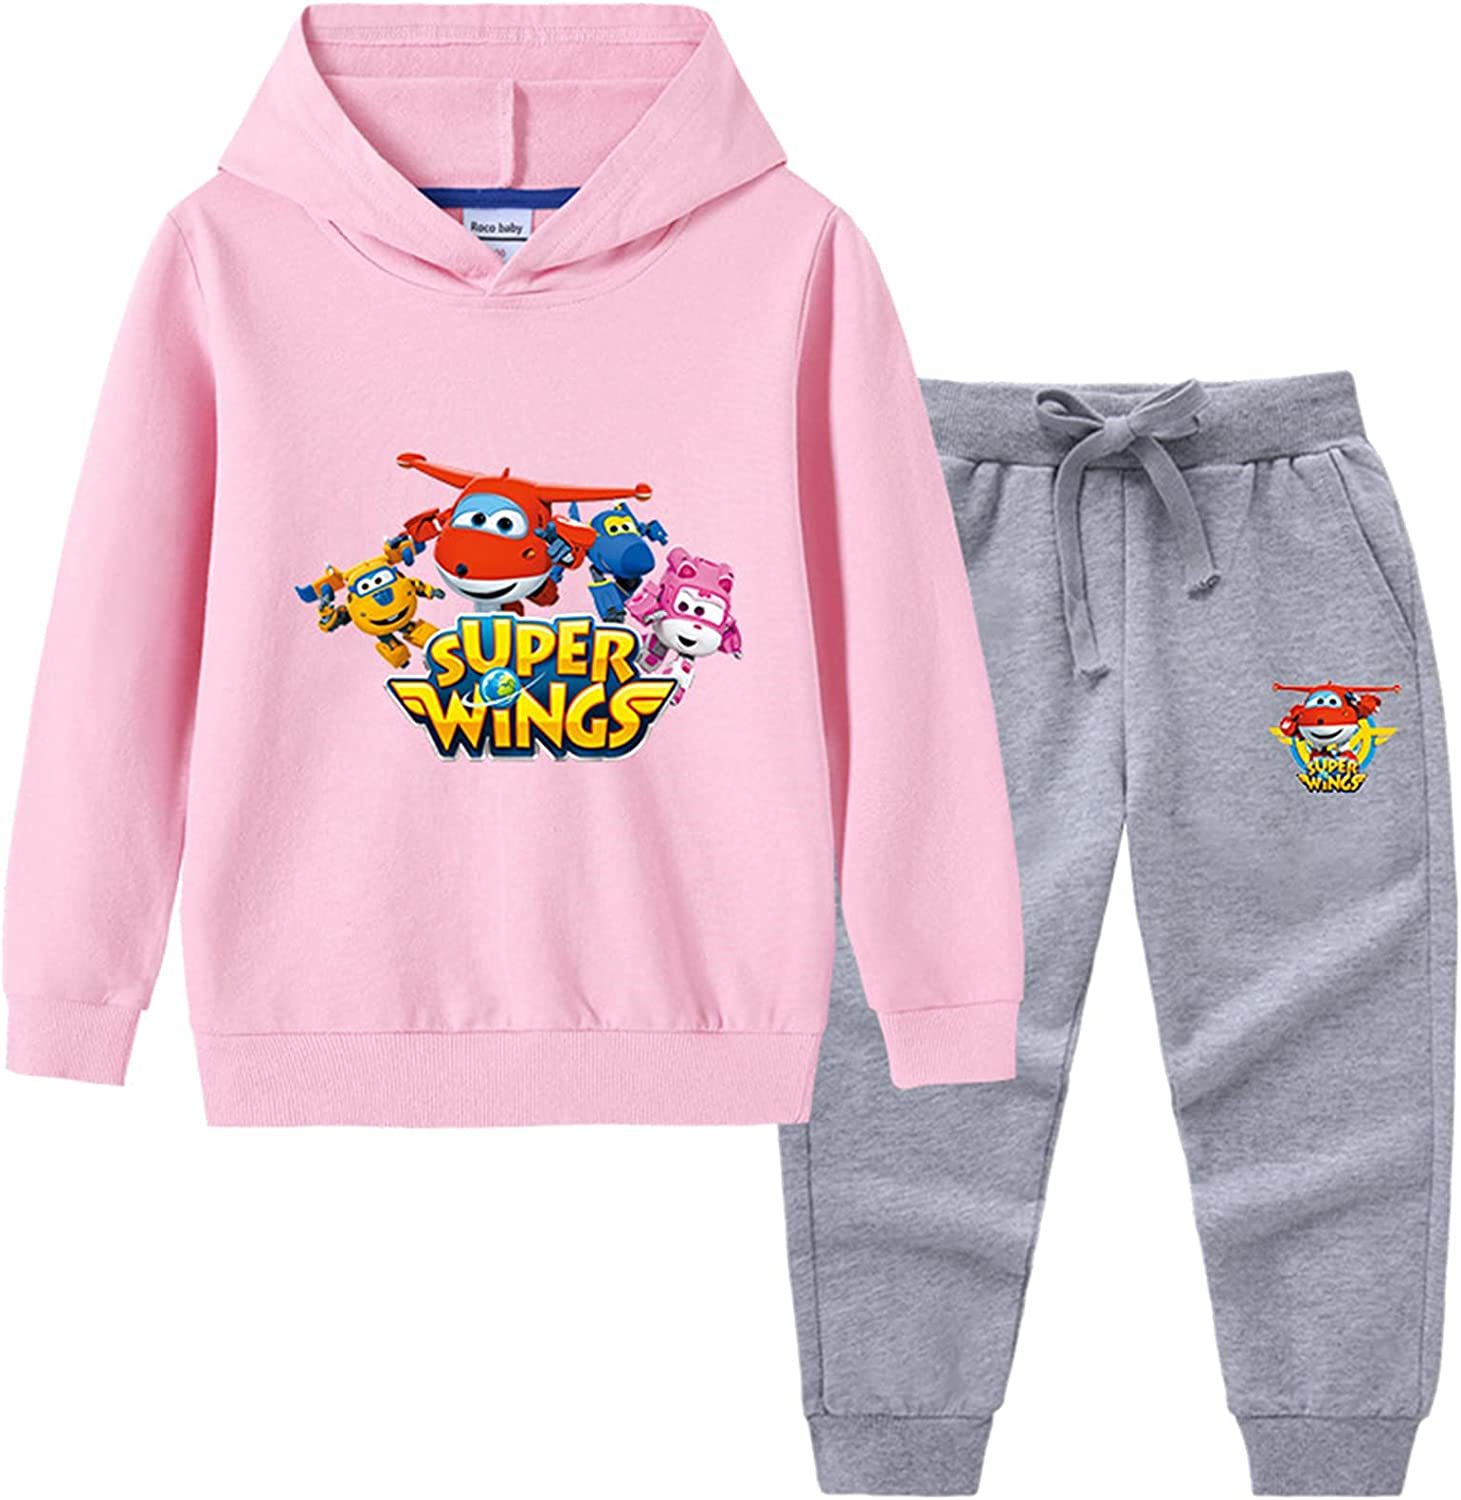 Ceomate Little Kids Super Wings Sweatshirt 2 Piece Suit Clothes,Boys Girls Pullover Hoodie and Pants Set